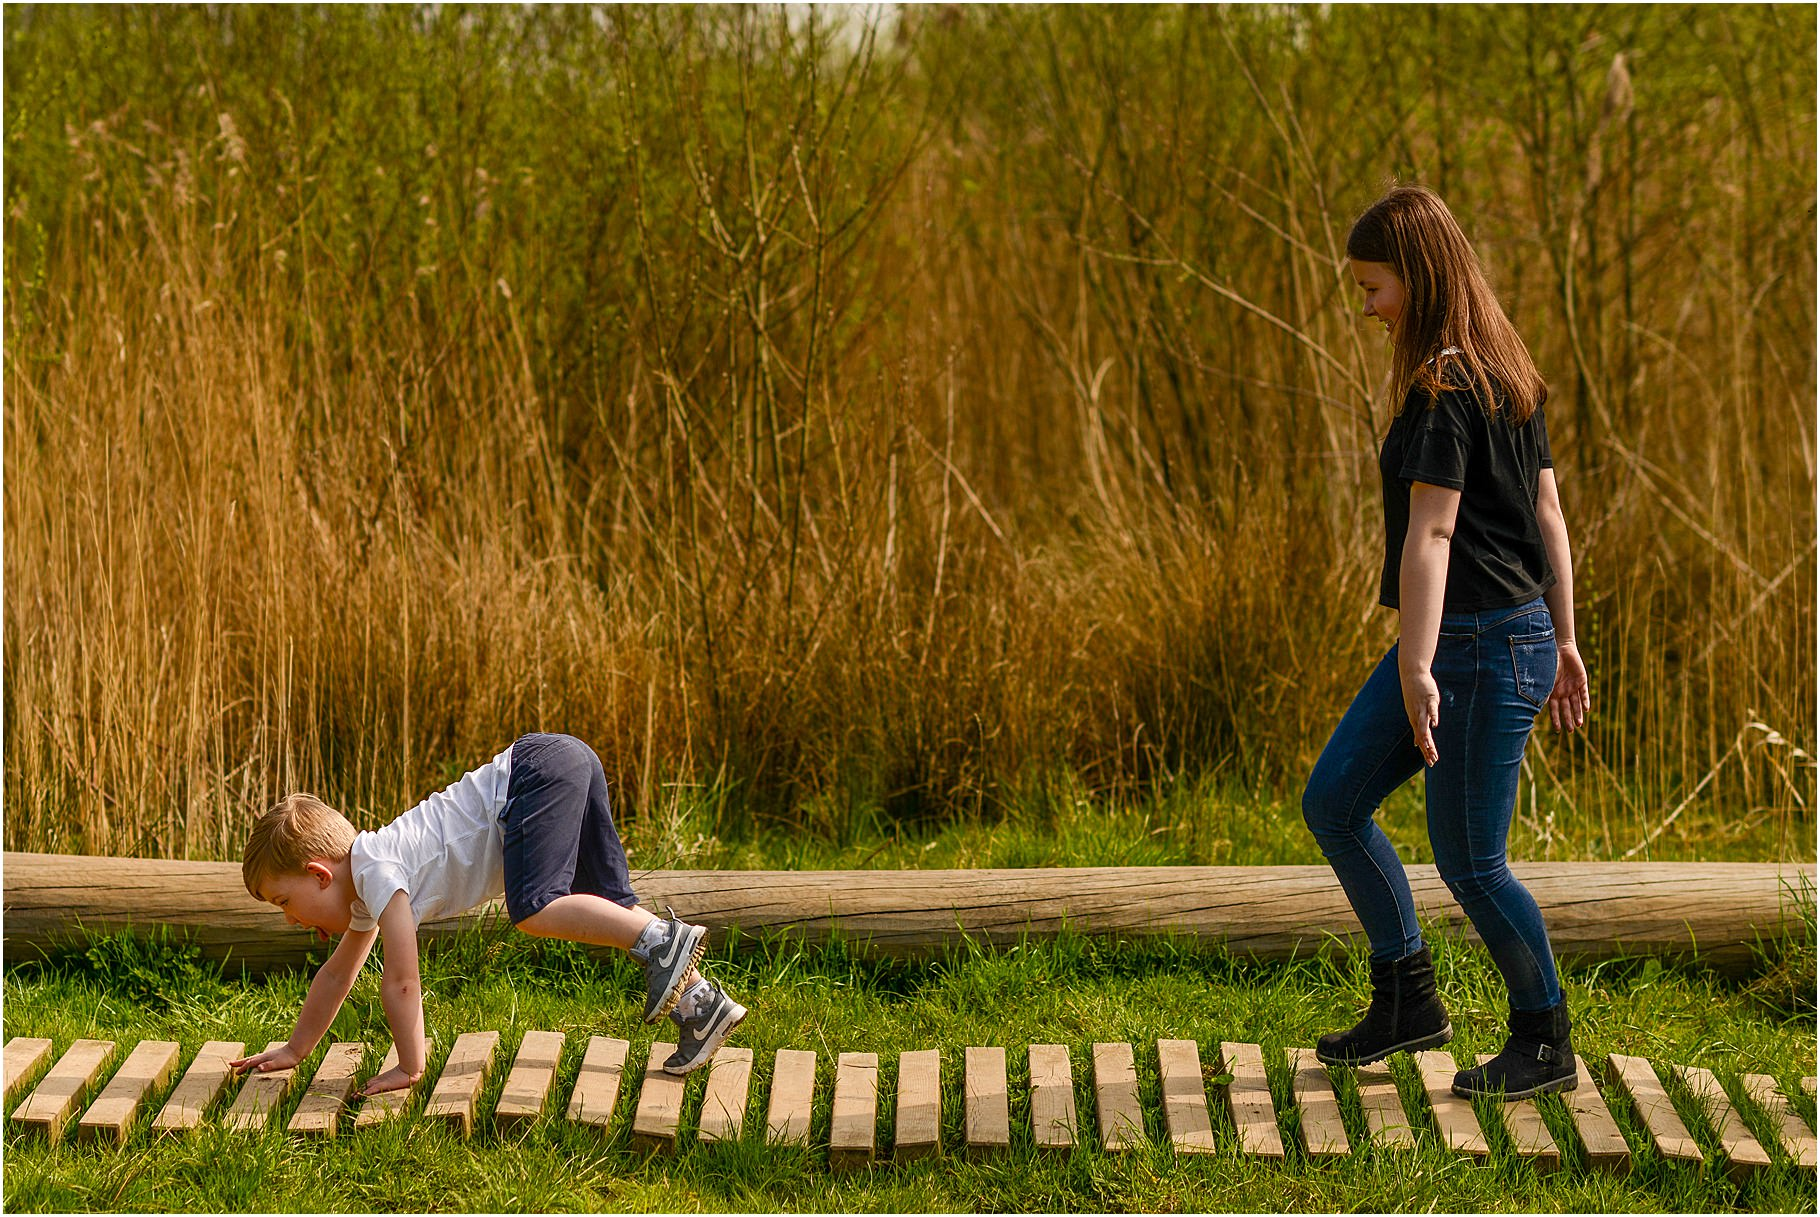 preston-family-shoot-brockholes-05.jpg